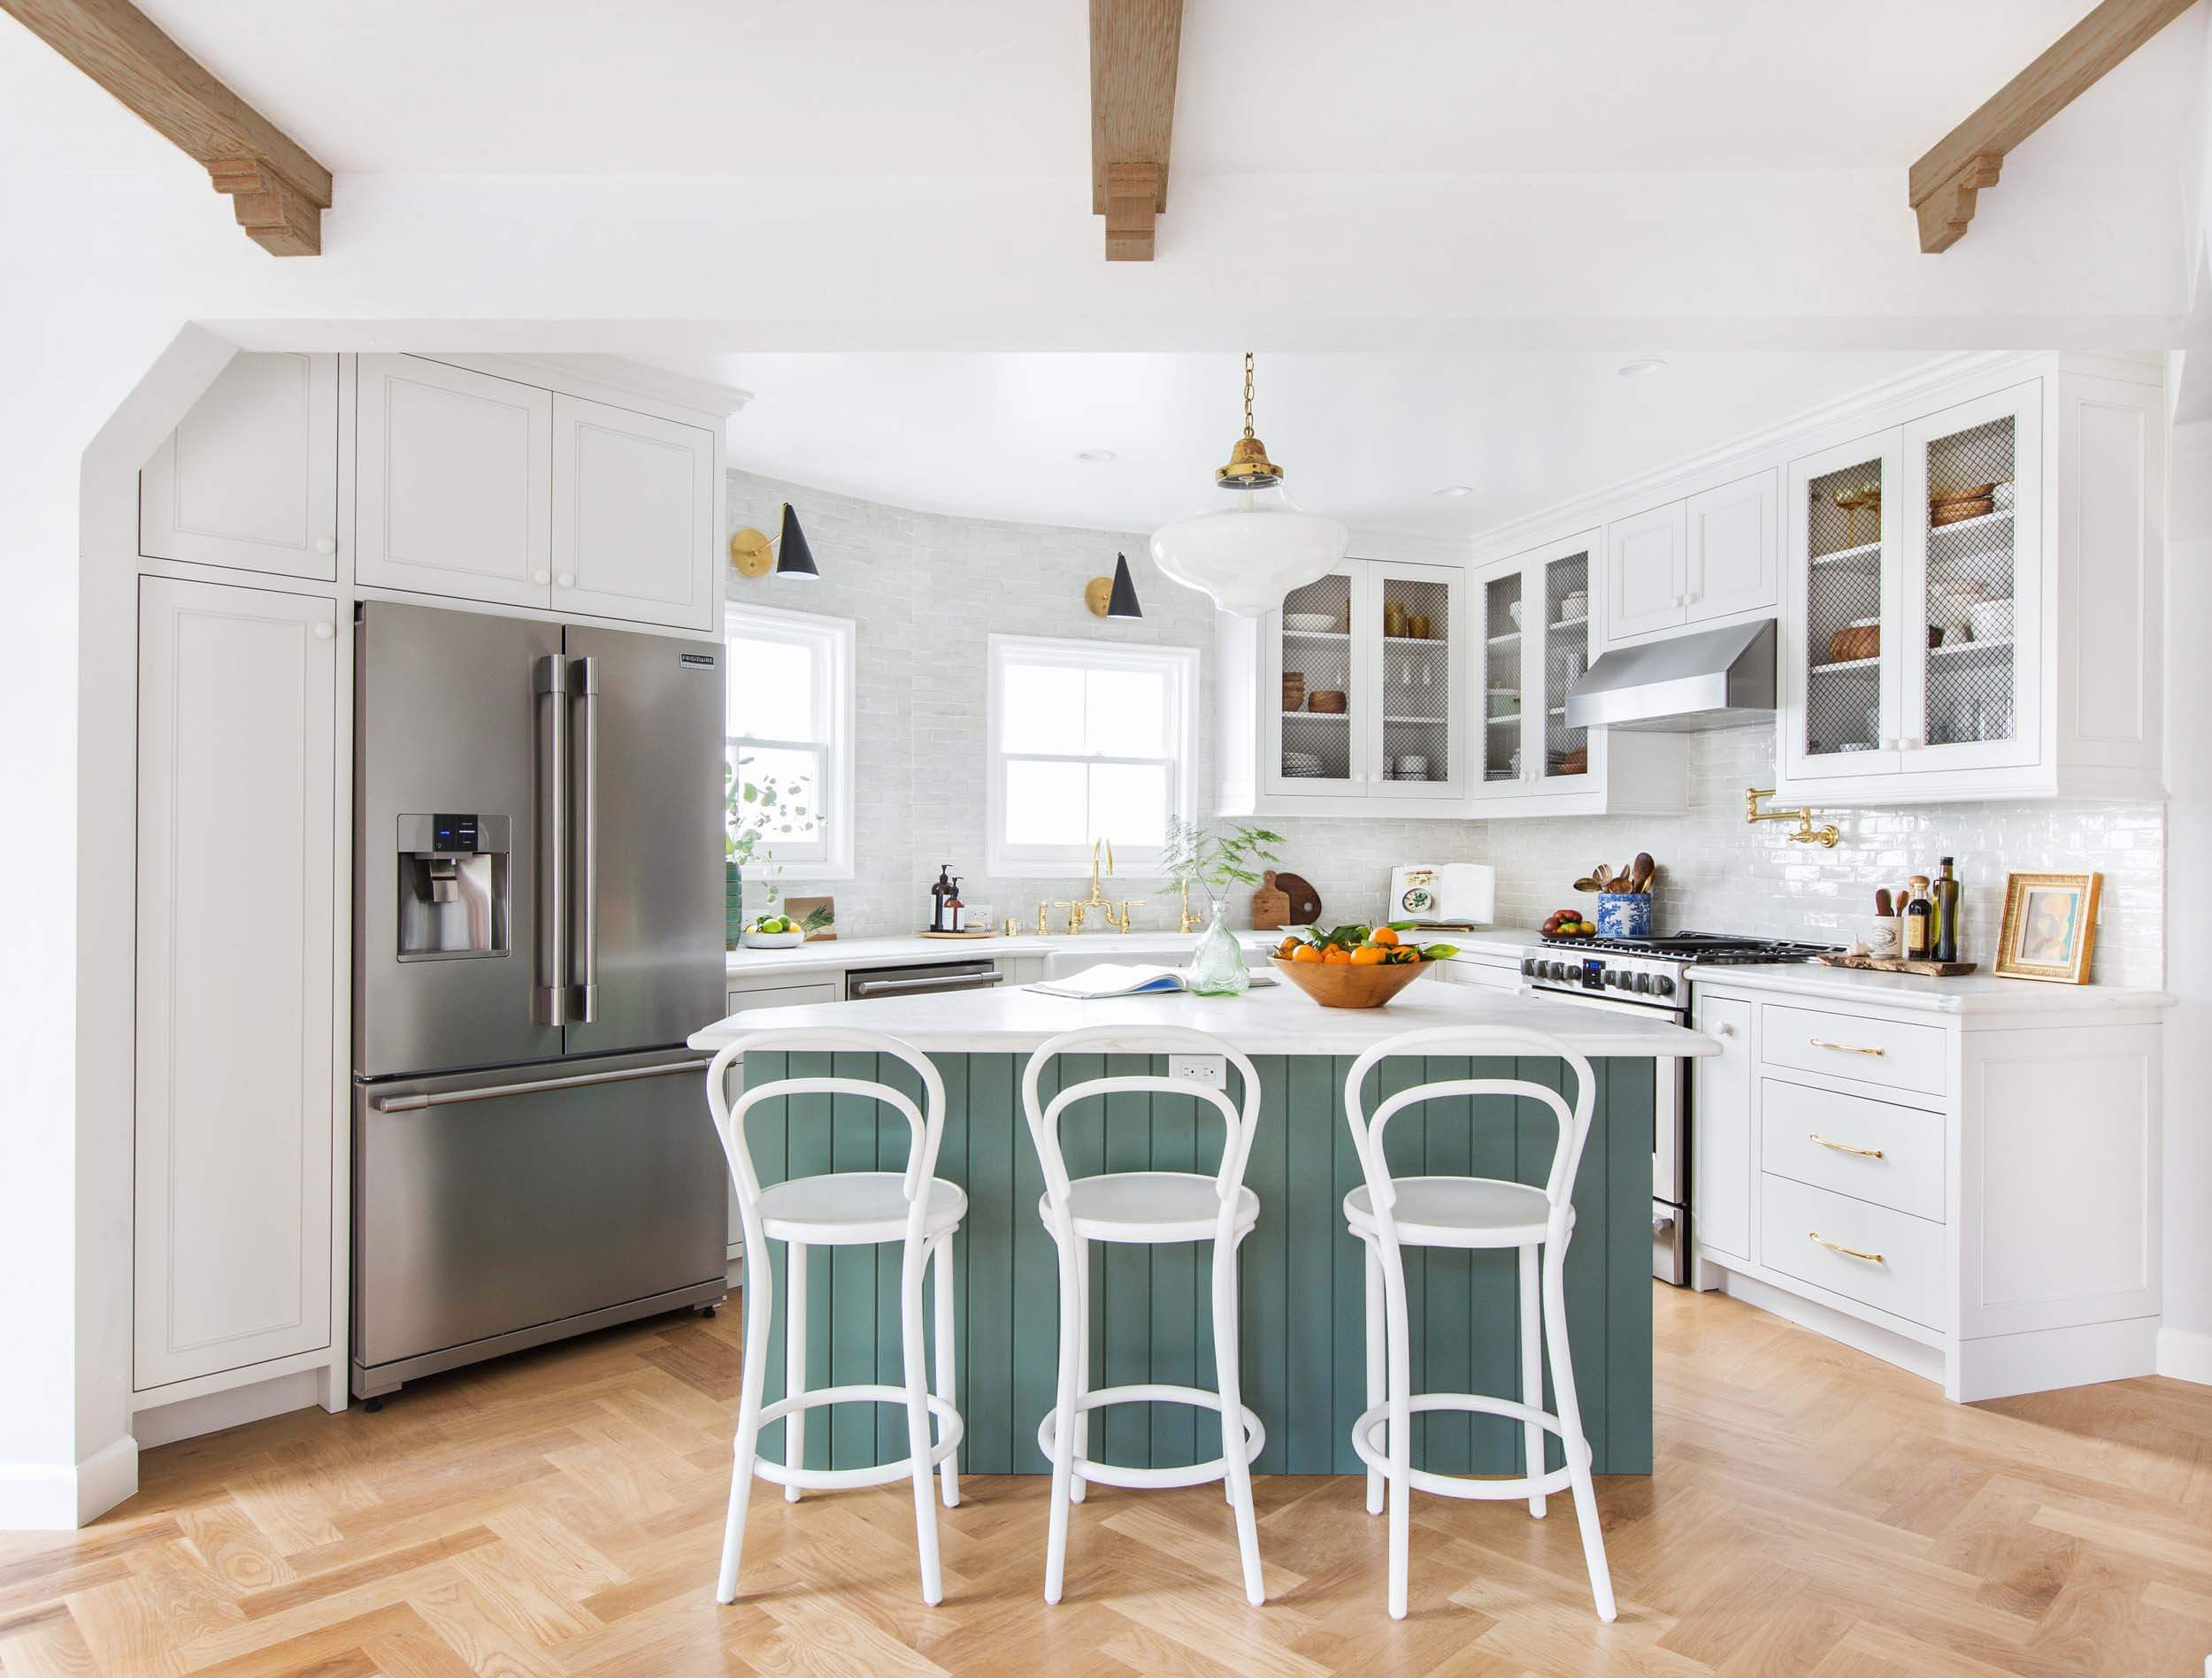 Emily Henderson renovated kitchen, with an island, bar stools, stainless steel appliances and brass hardware.